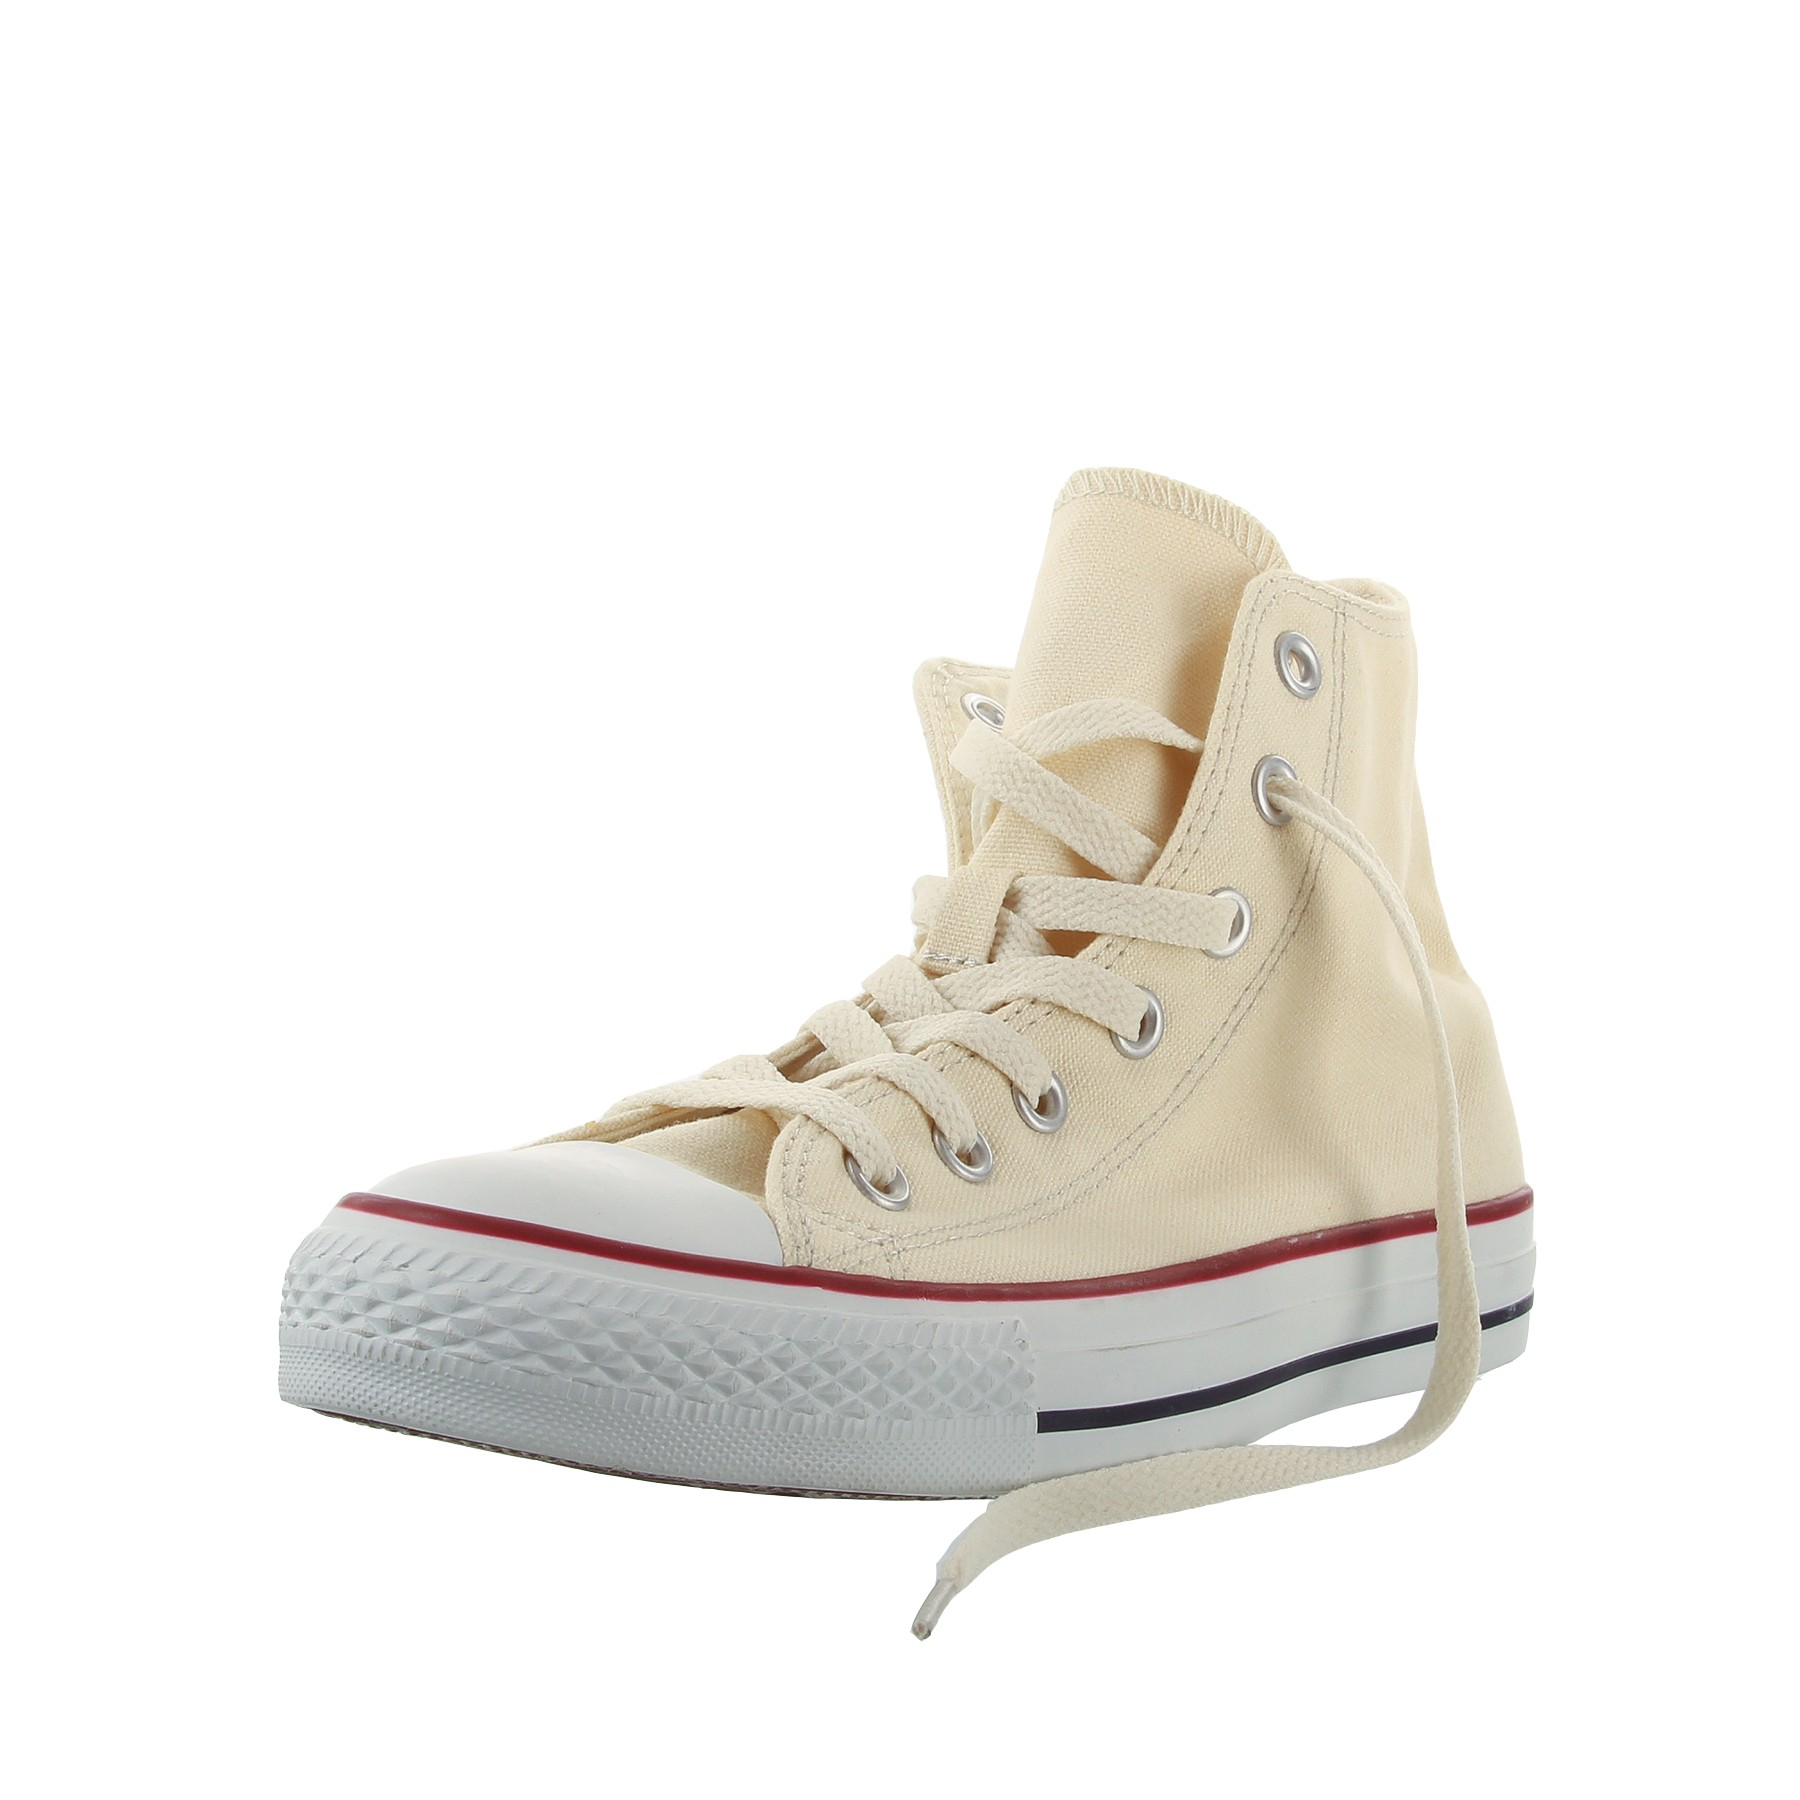 M9162 CT CHUCK TAYLOR AS CORE/ WHITE Bild https://cdn03.plentymarkets.com/zsy4vjx32p87/item/images/4257/full/M9162-ama-01.JPG